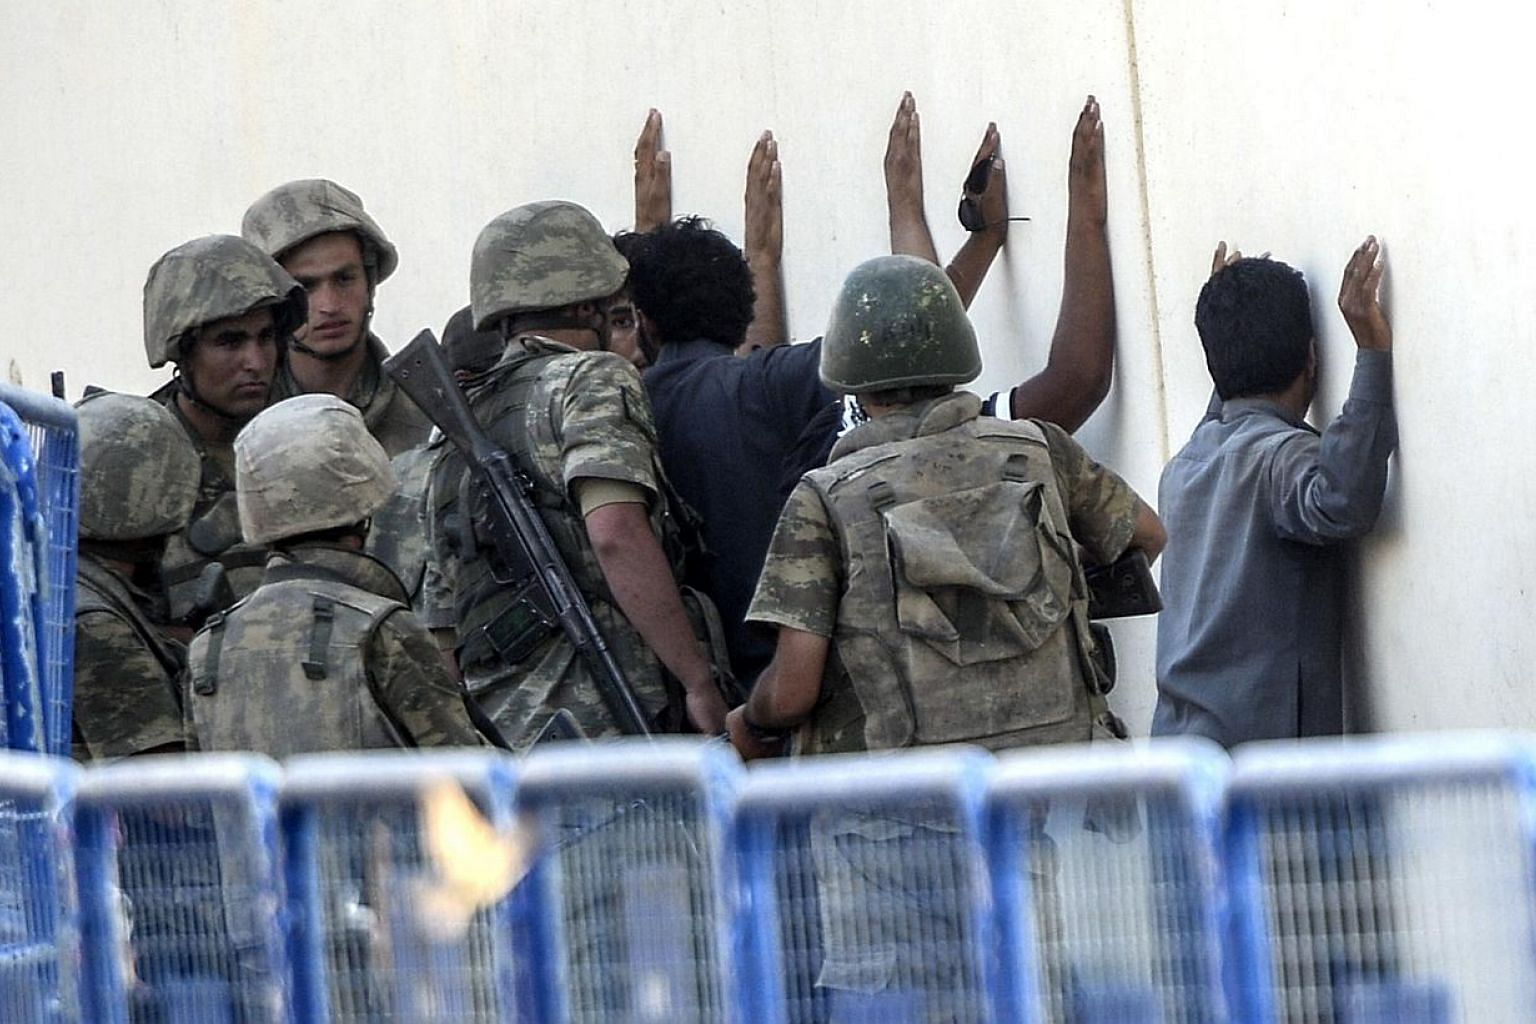 Turkish soldiers detain men who came from Syria and and are said to be ISIS fighters, near the Akcakale crossing gate between Turkey and Syria on Monday. -- PHOTO: AFP